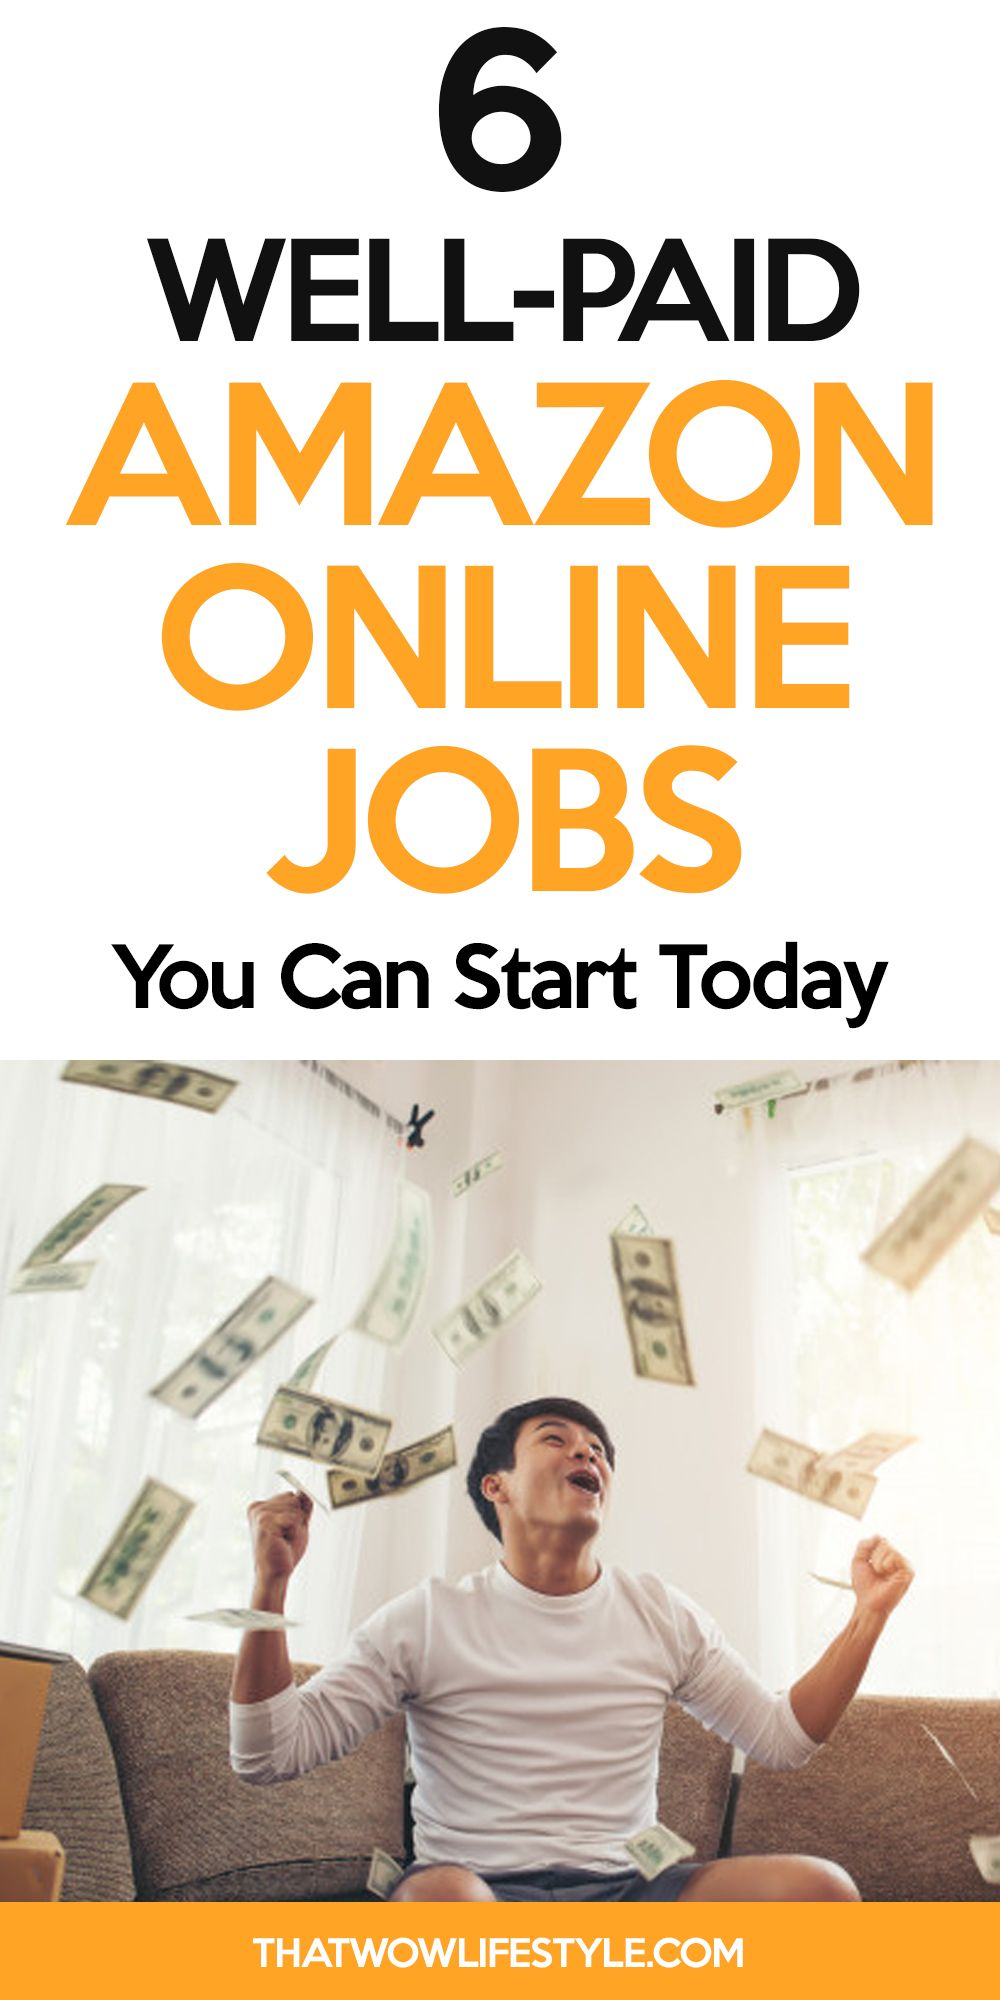 Make Money From Home With Amazon With 6 Legit Jobs In 2020